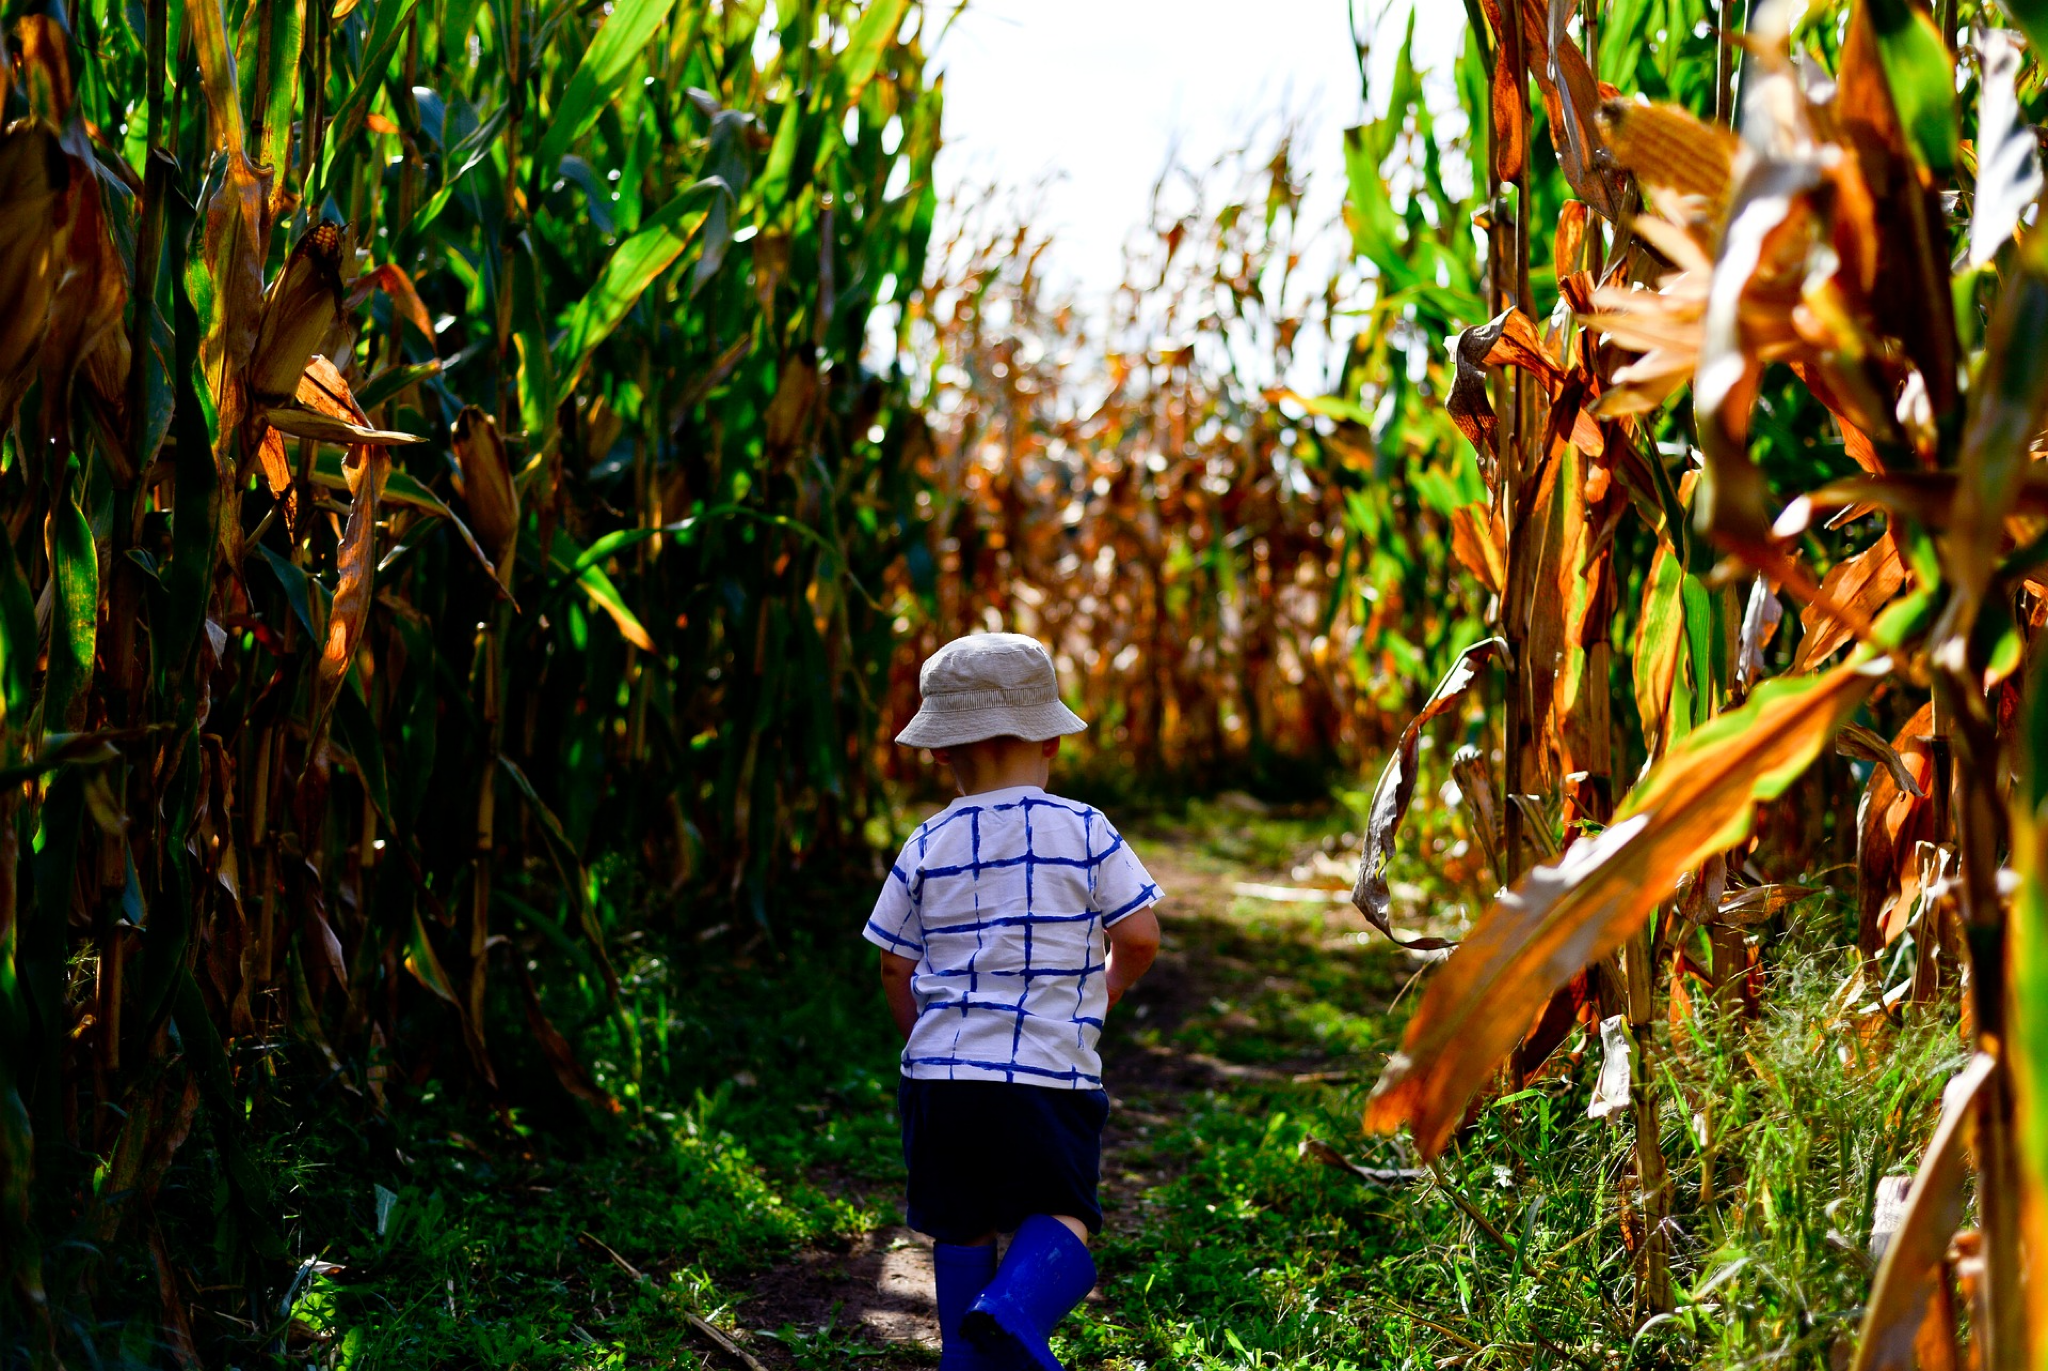 Fall in Maine isn't complete without a corn maze